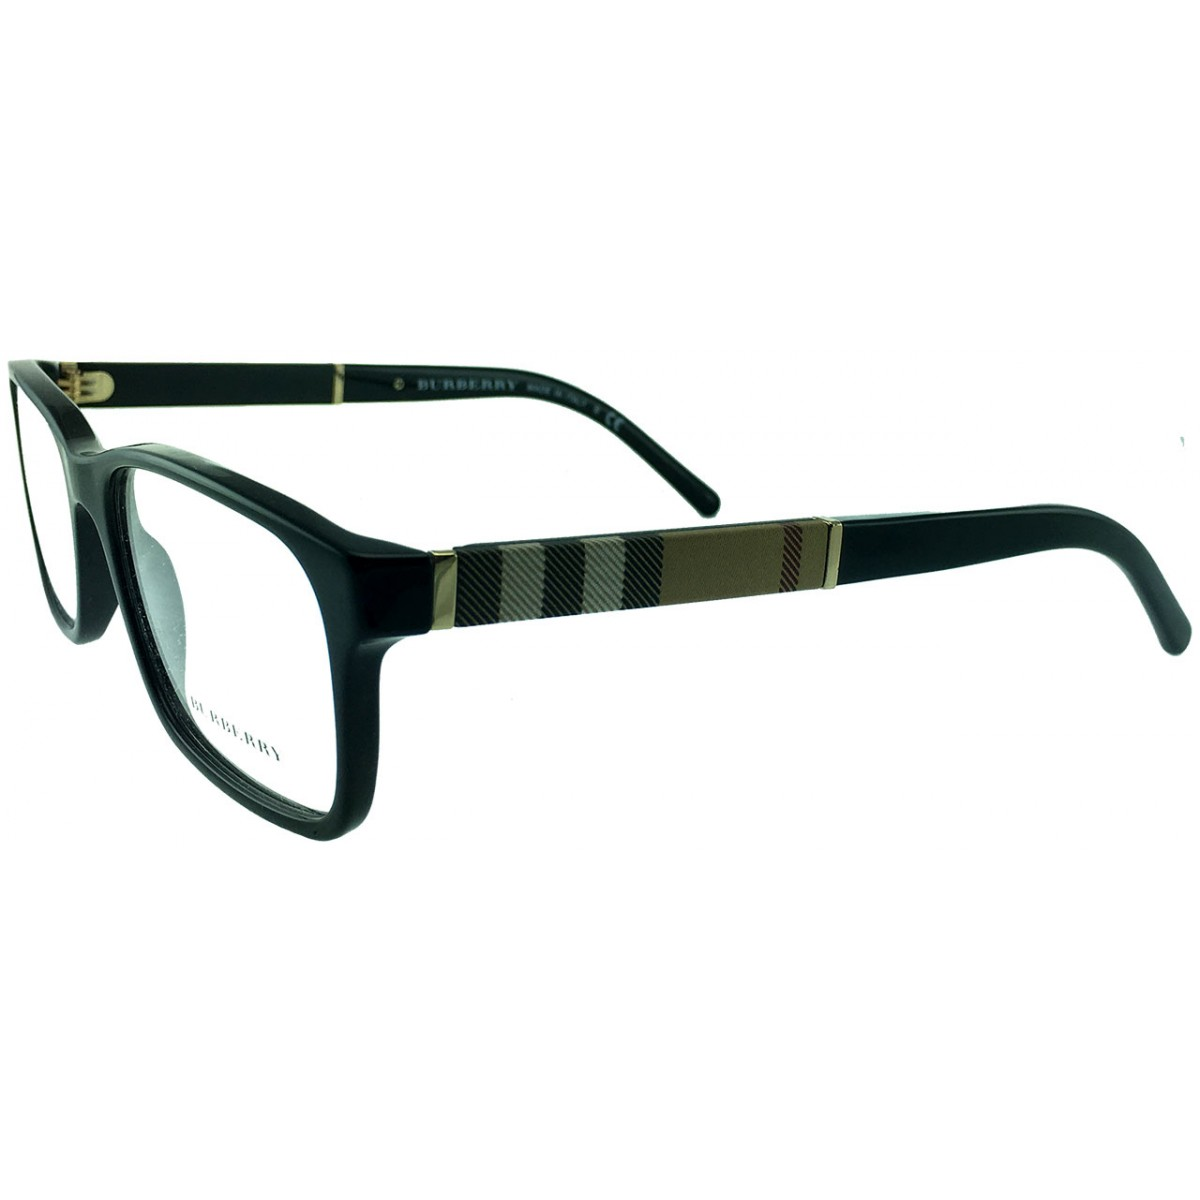 9c18e3bf66 Online Eyeglasses with Customer Service Center in California ...